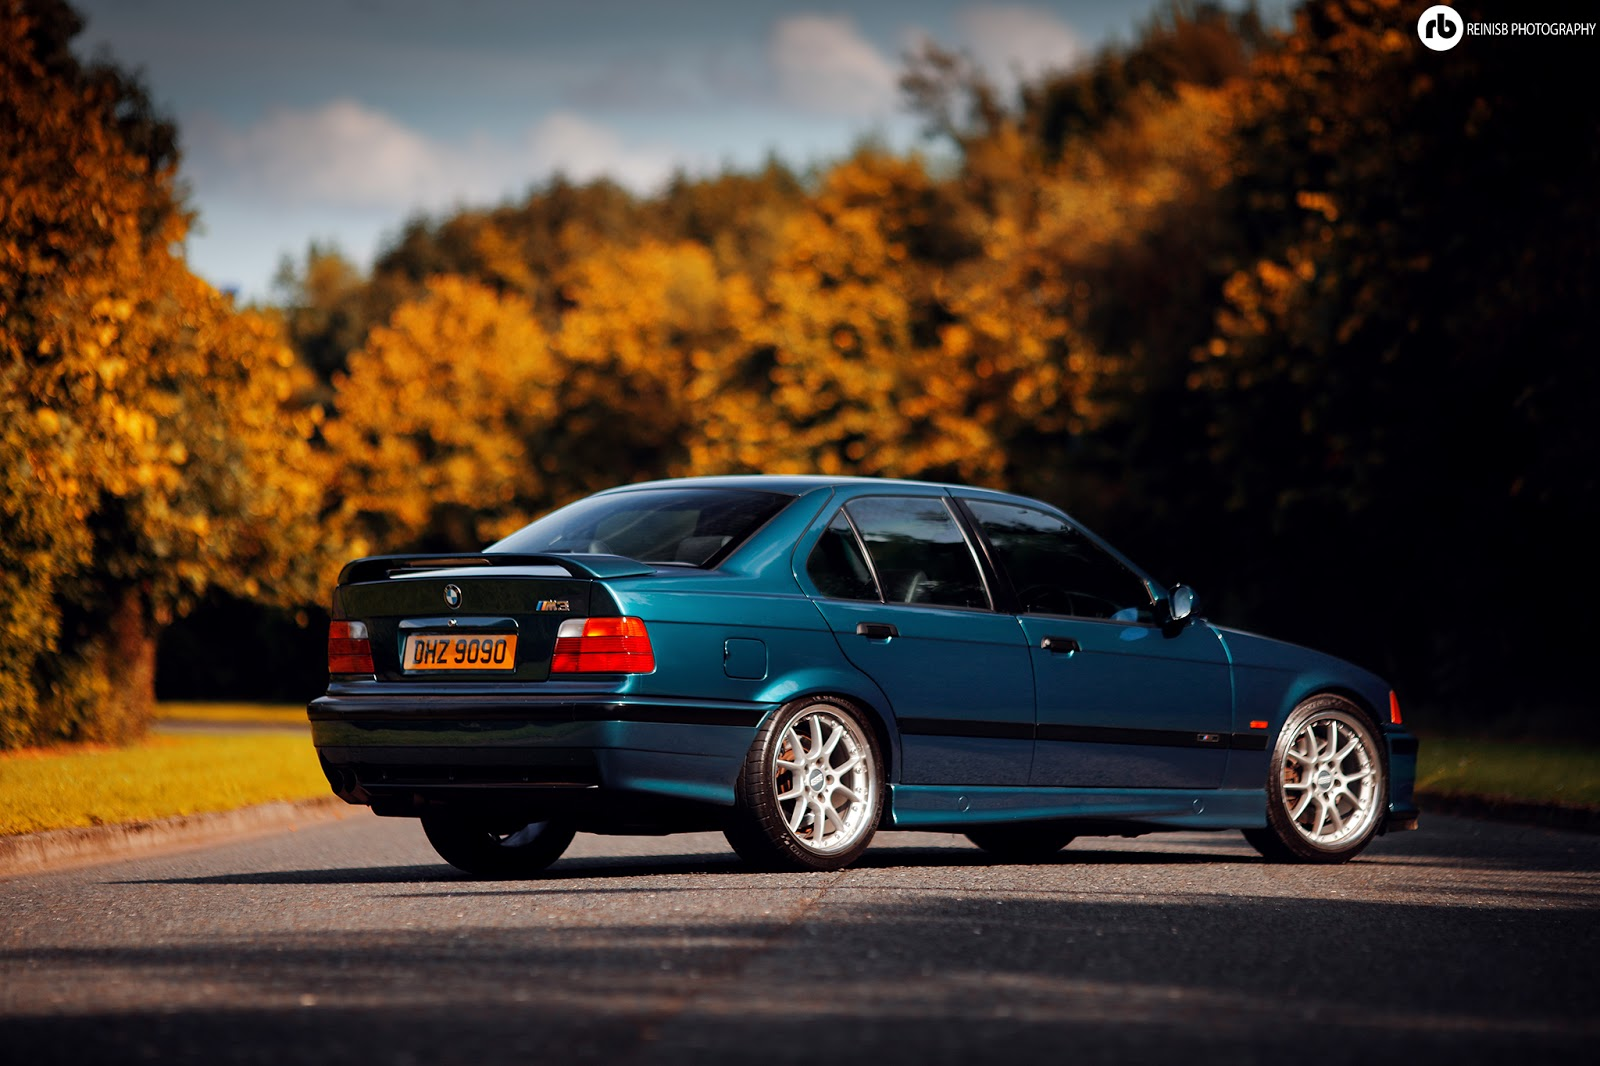 reinis babrovskis photography bmw m3 e36. Black Bedroom Furniture Sets. Home Design Ideas